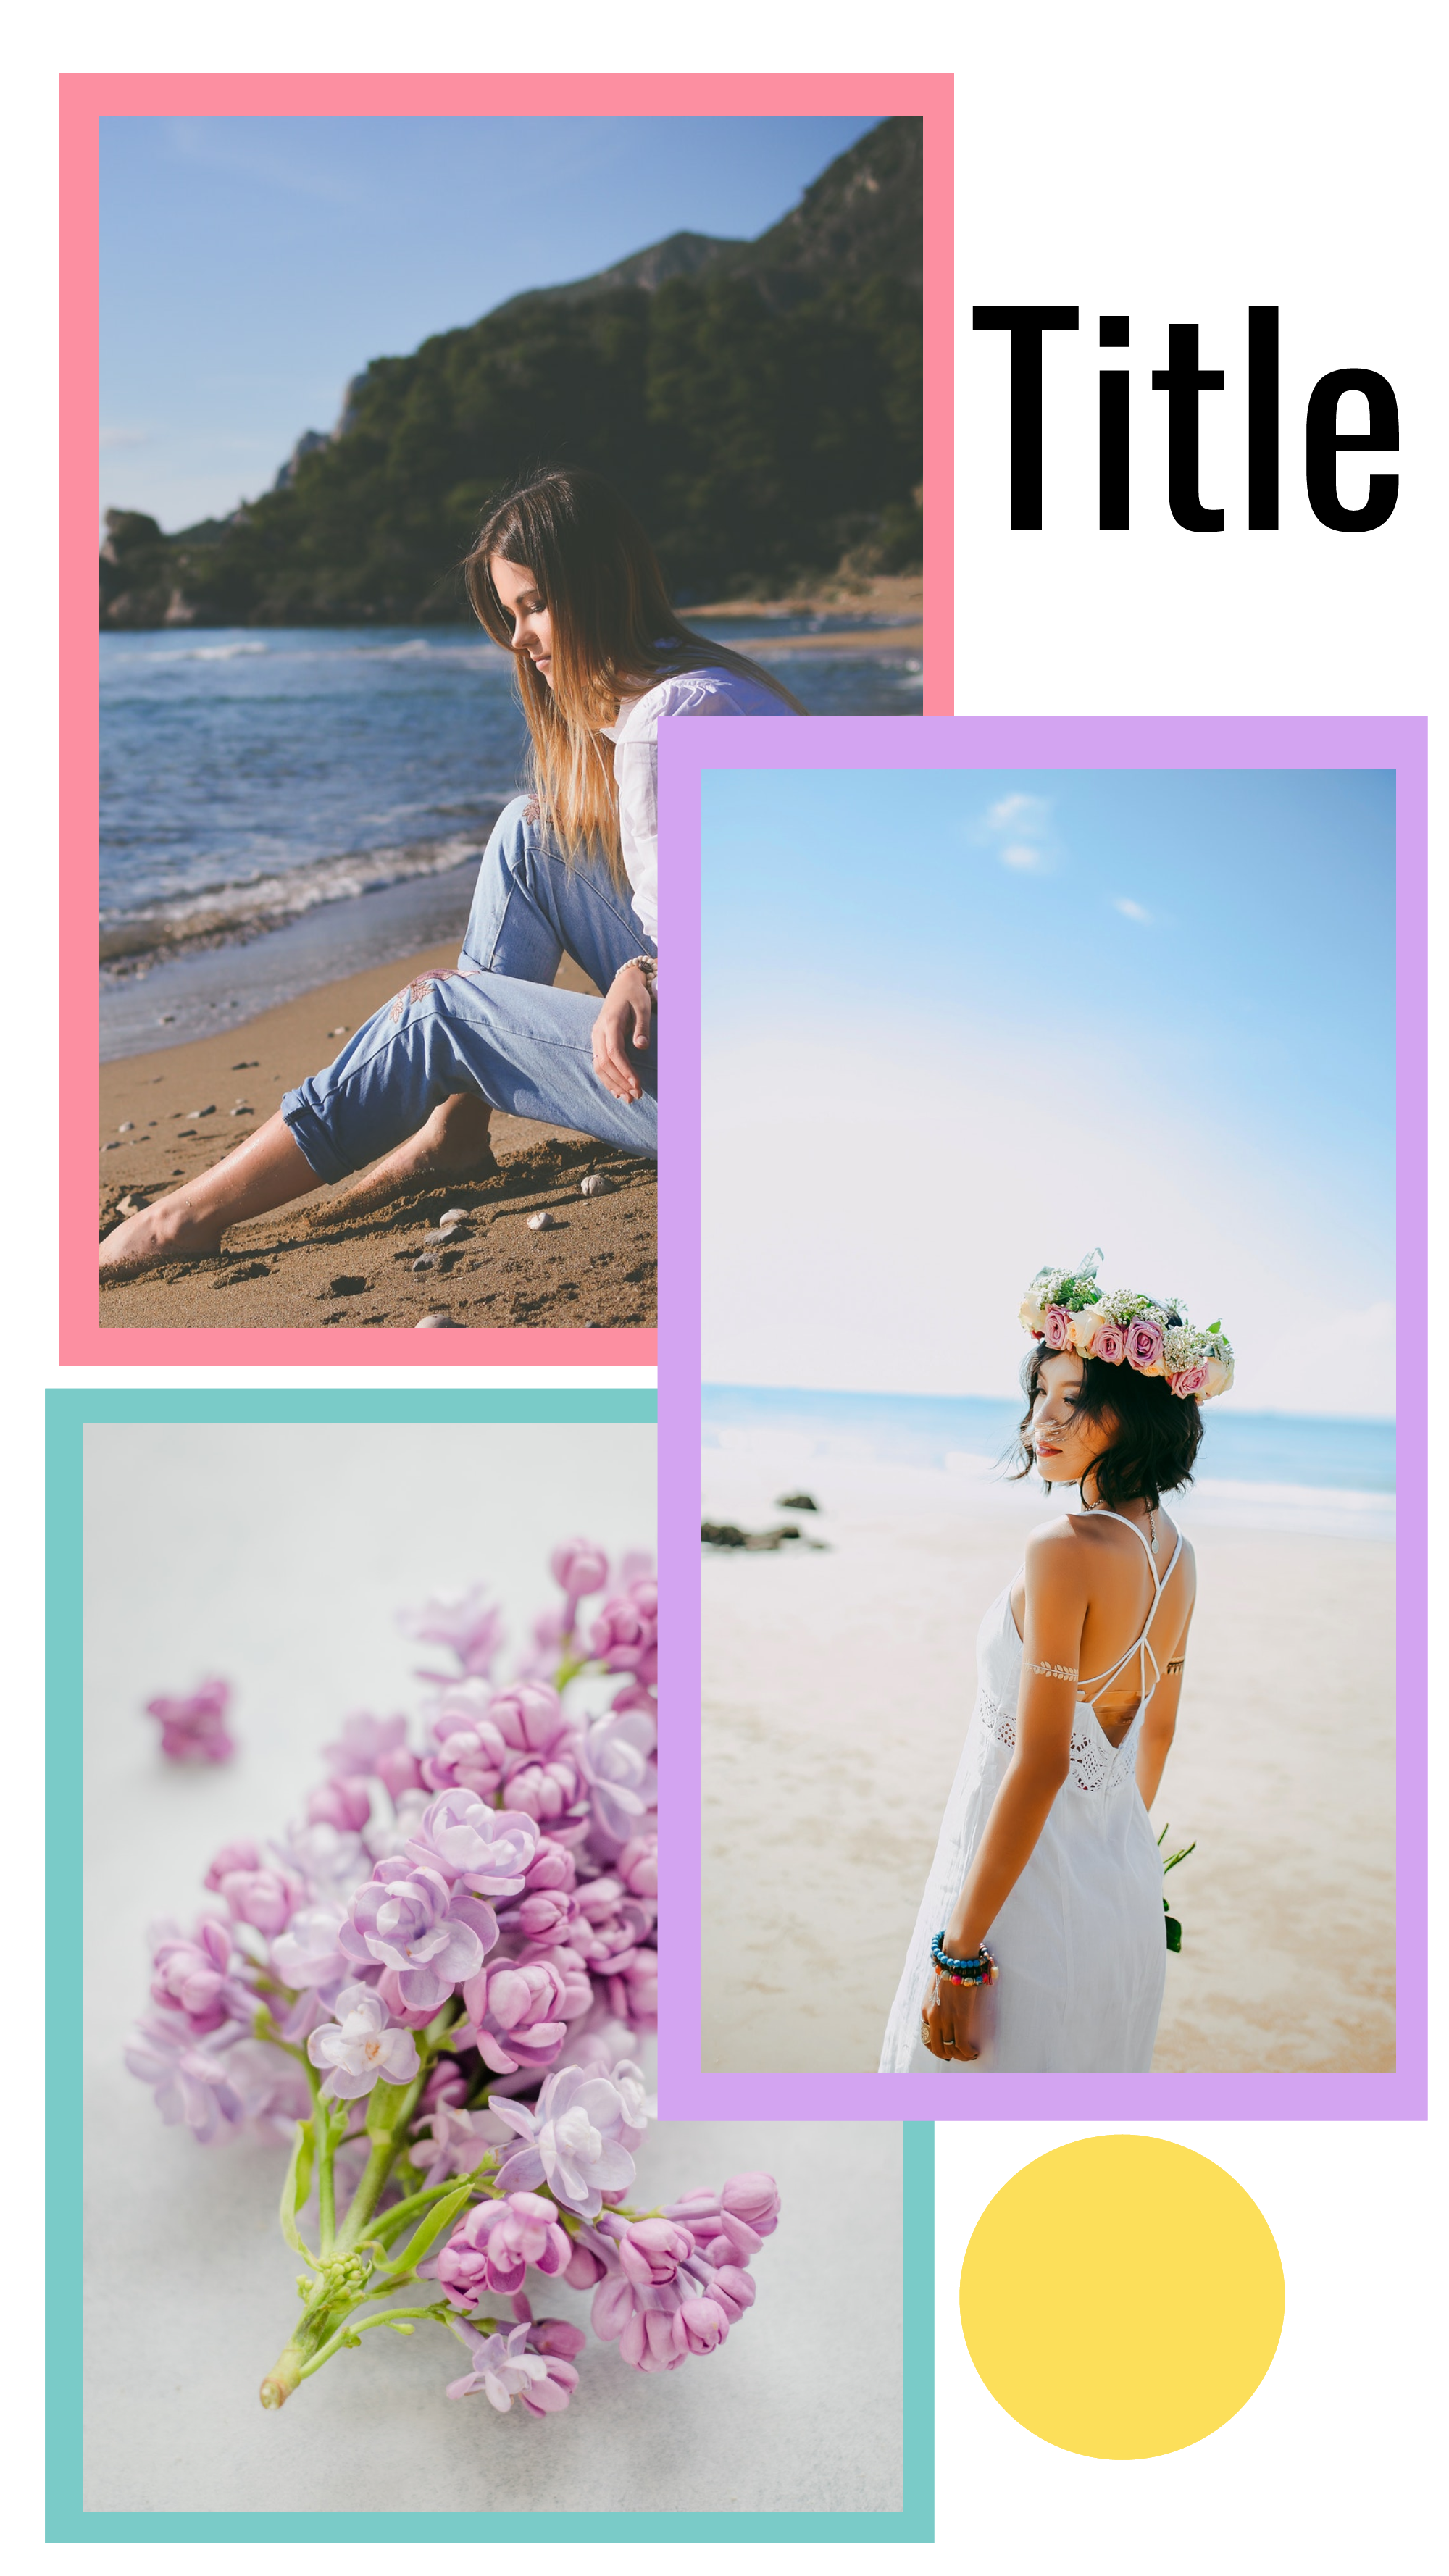 Happy Pastel collection - Title Instagram Story Template